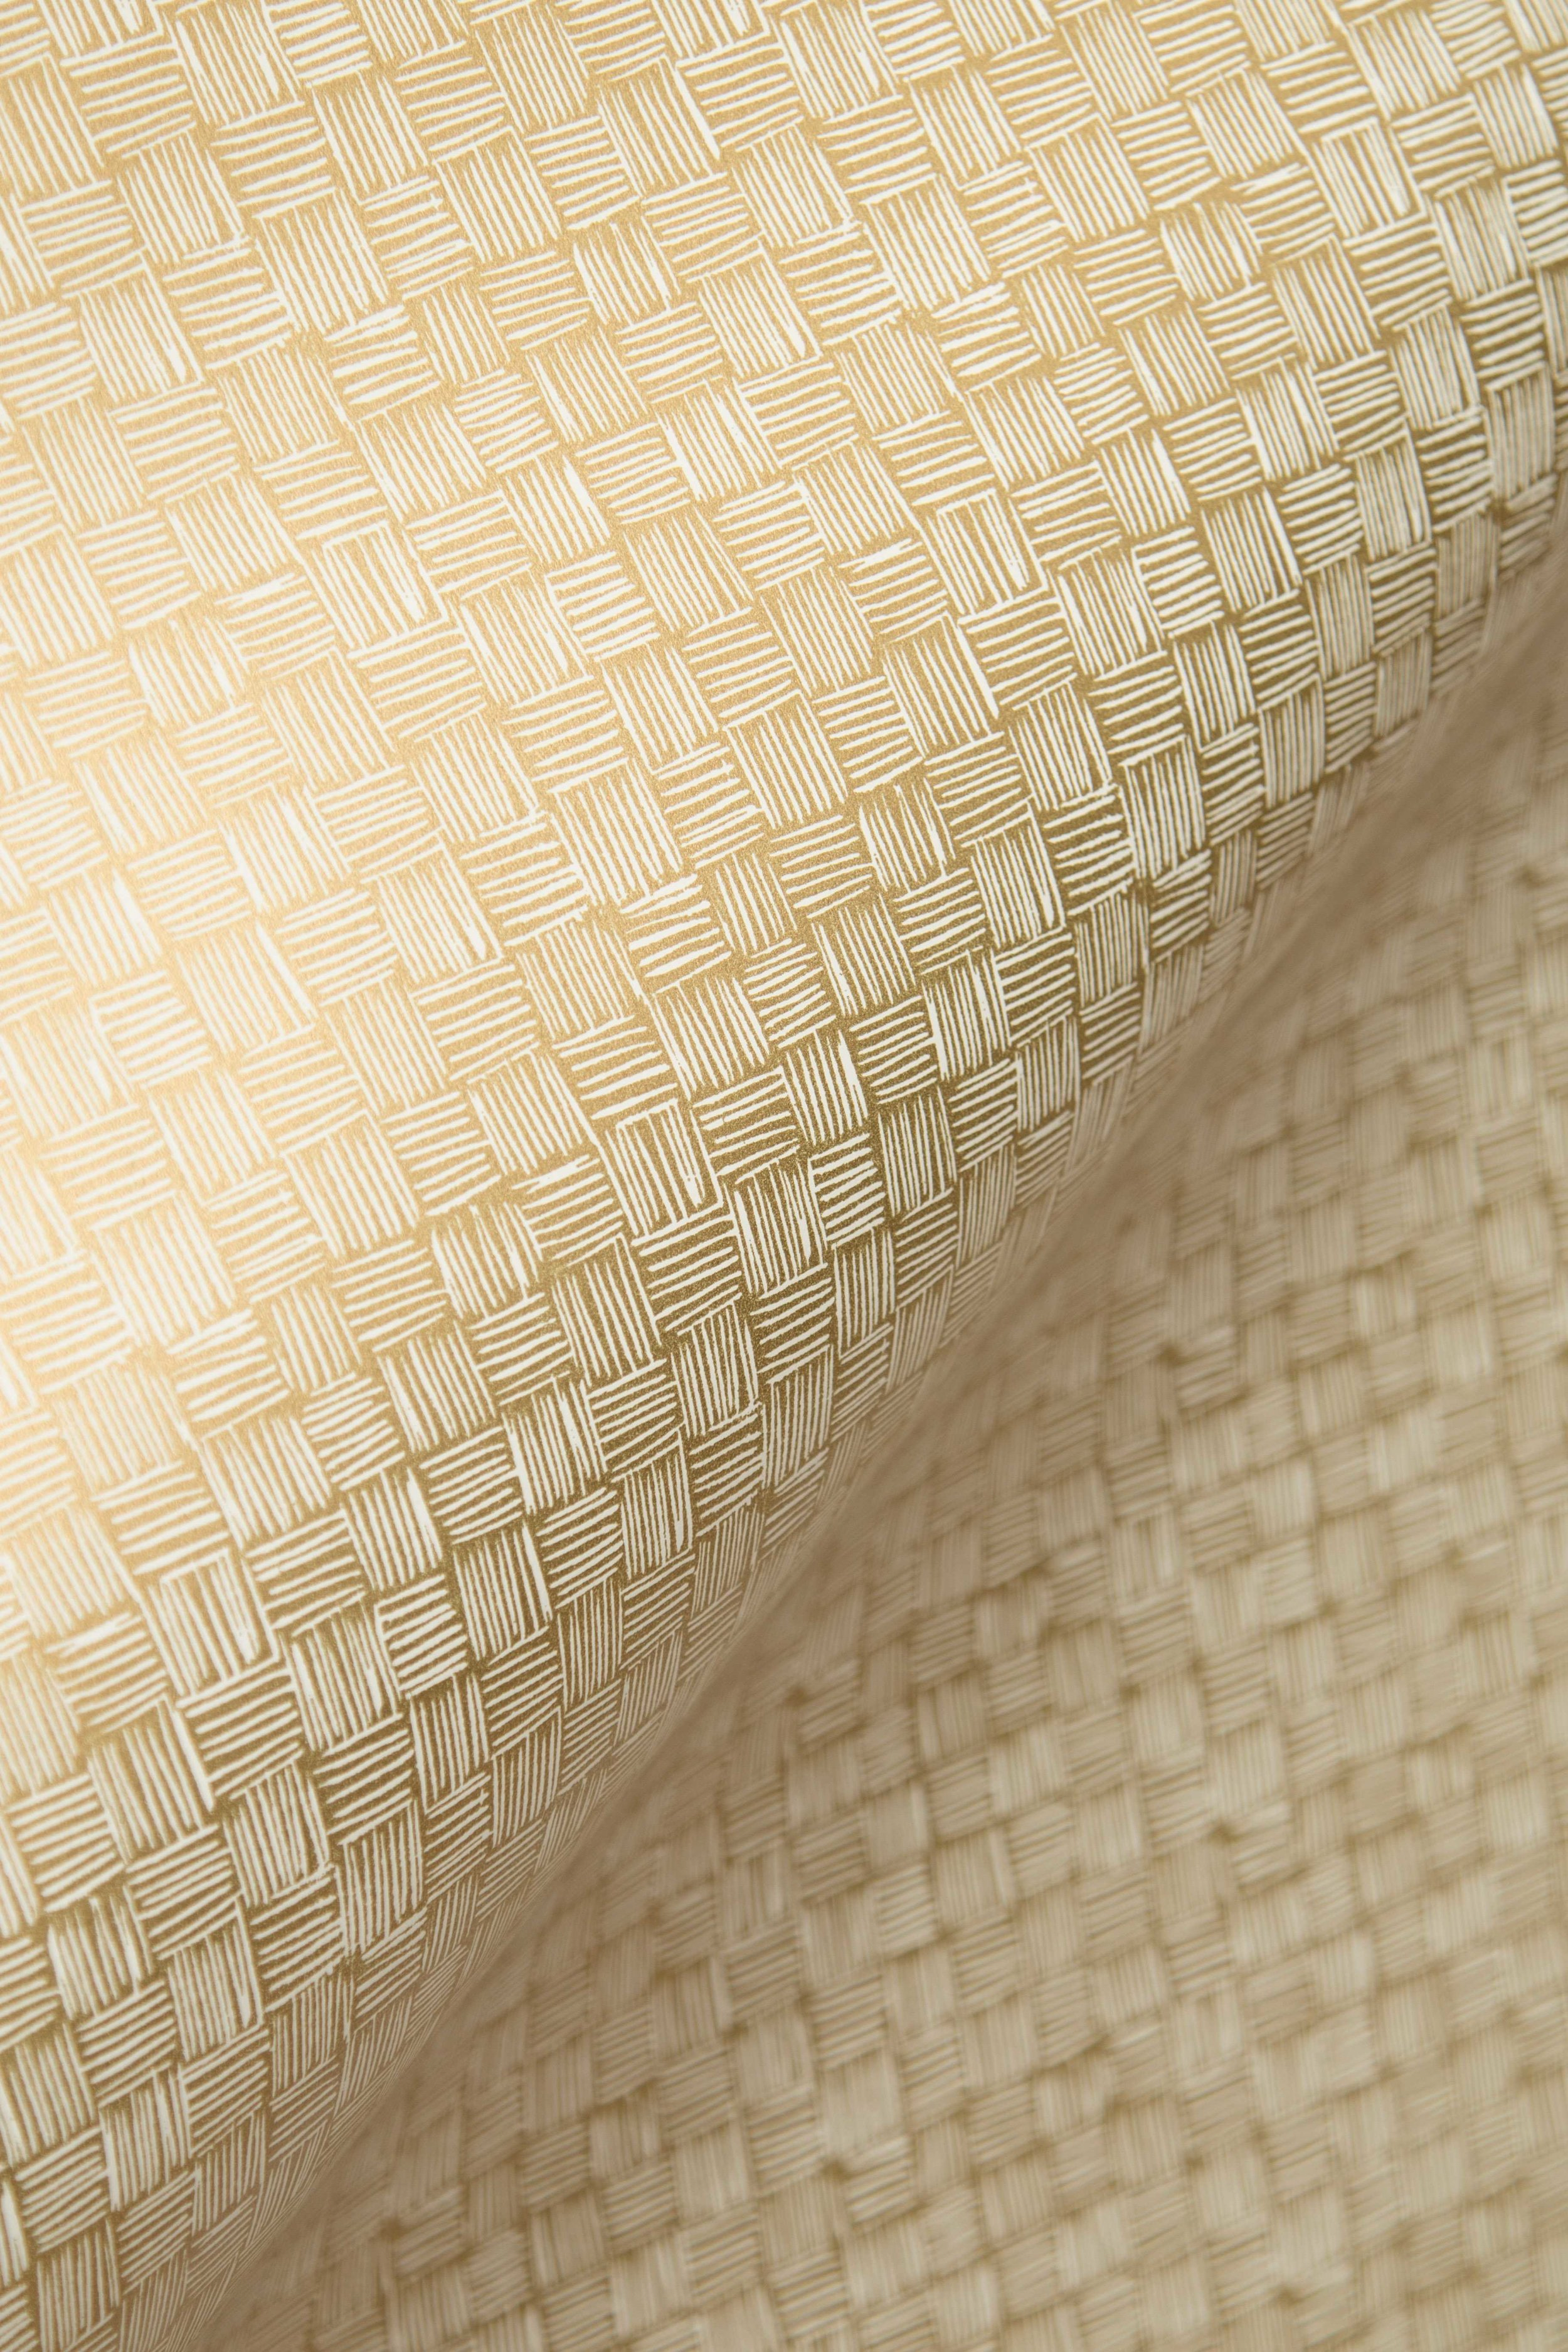 Woven in Gold, SL203-07